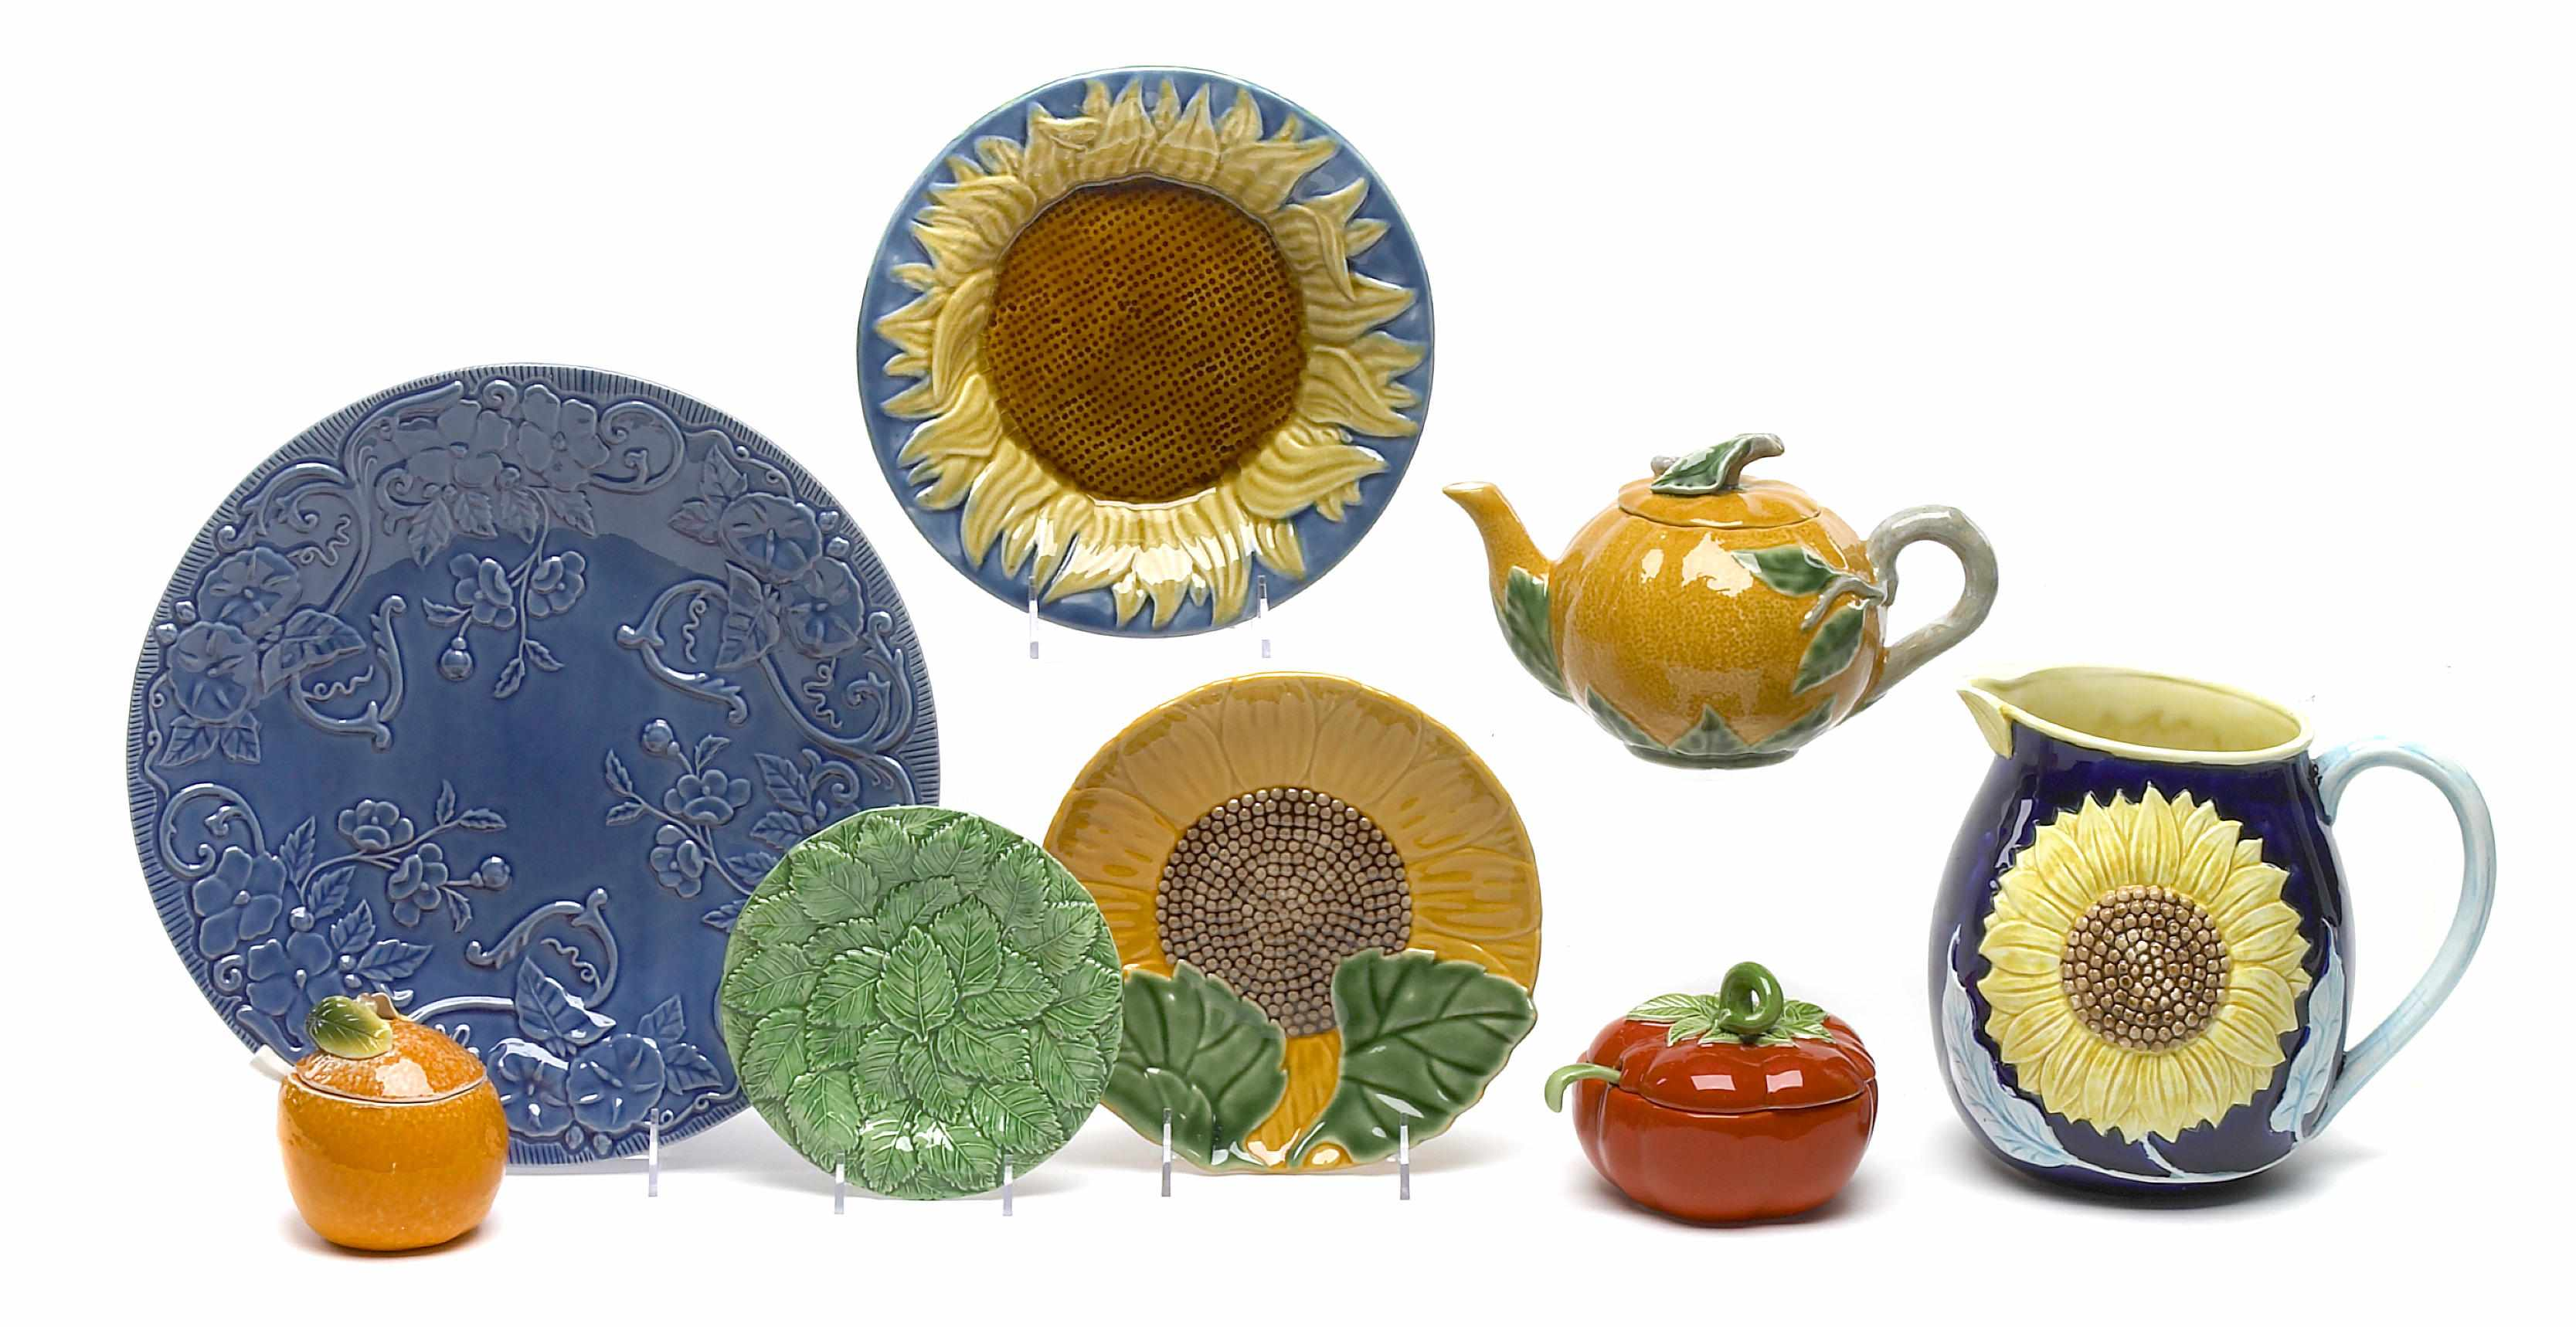 An assortment of paint decorated and glazed